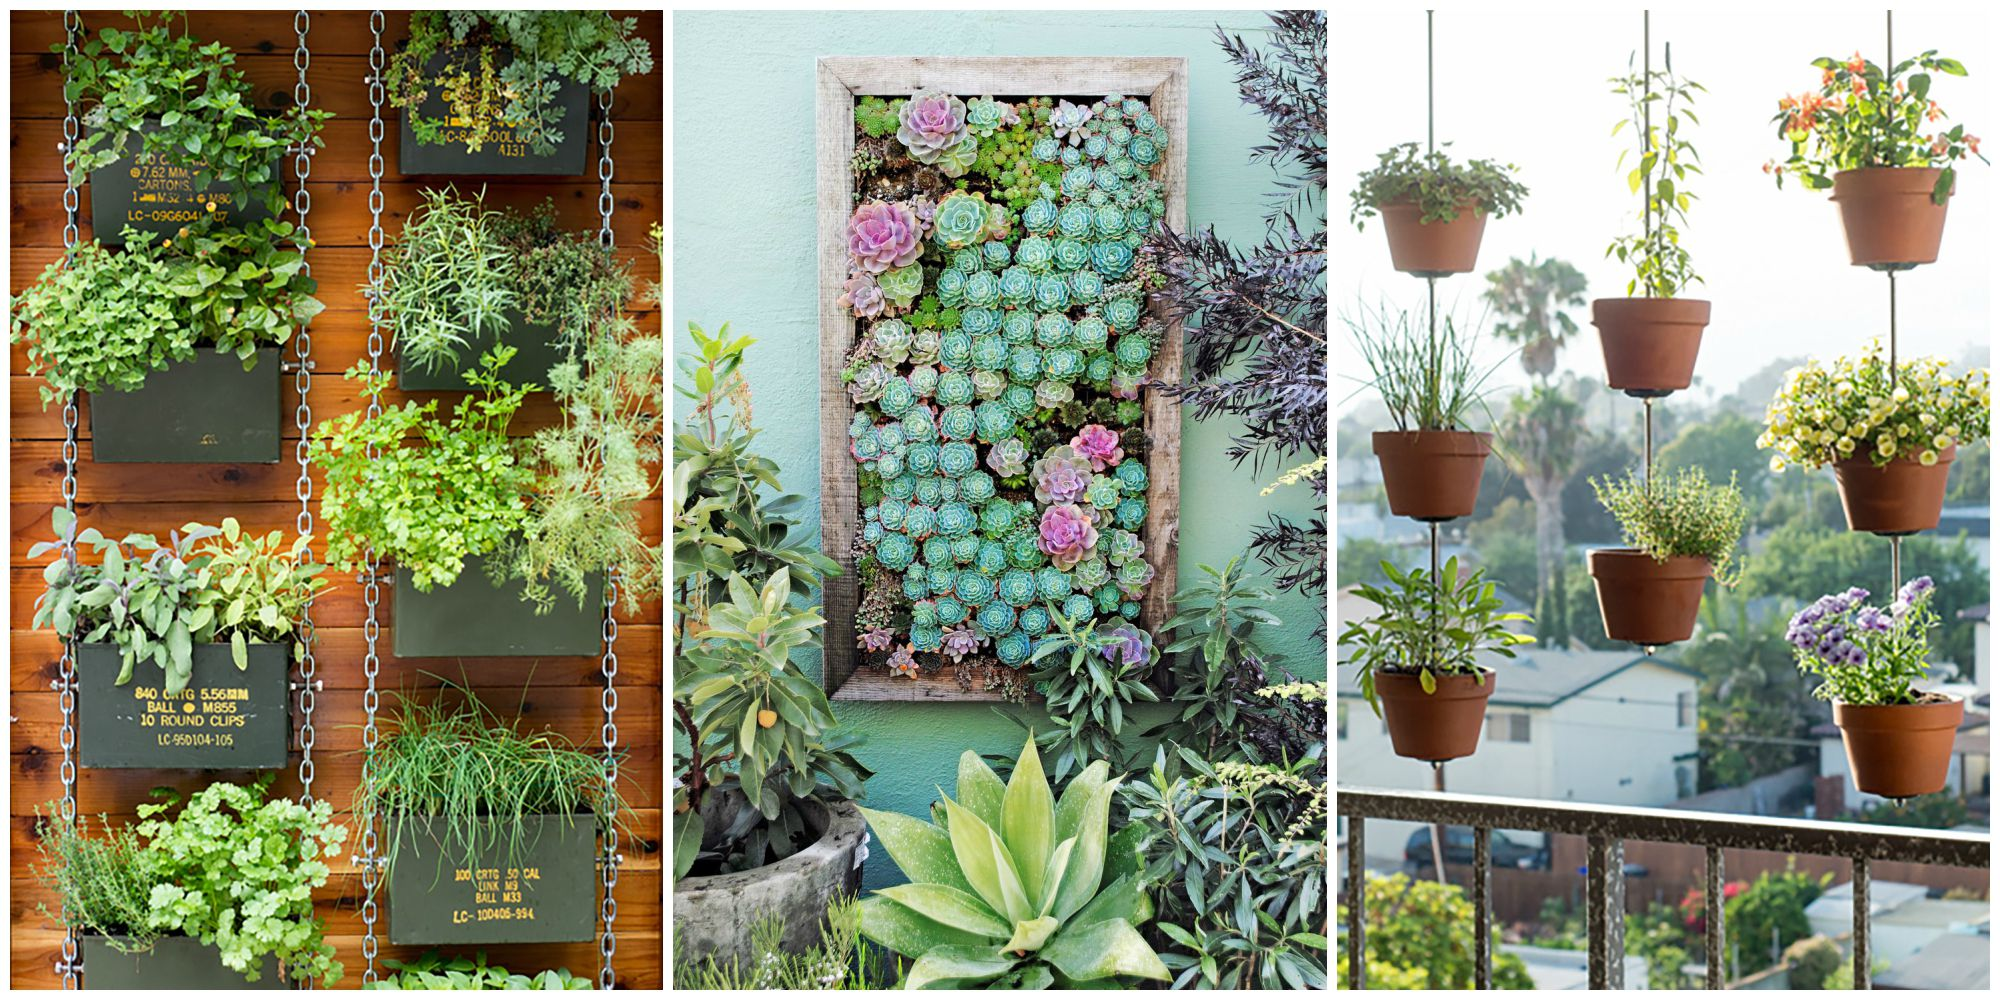 What Plants Can You Chose